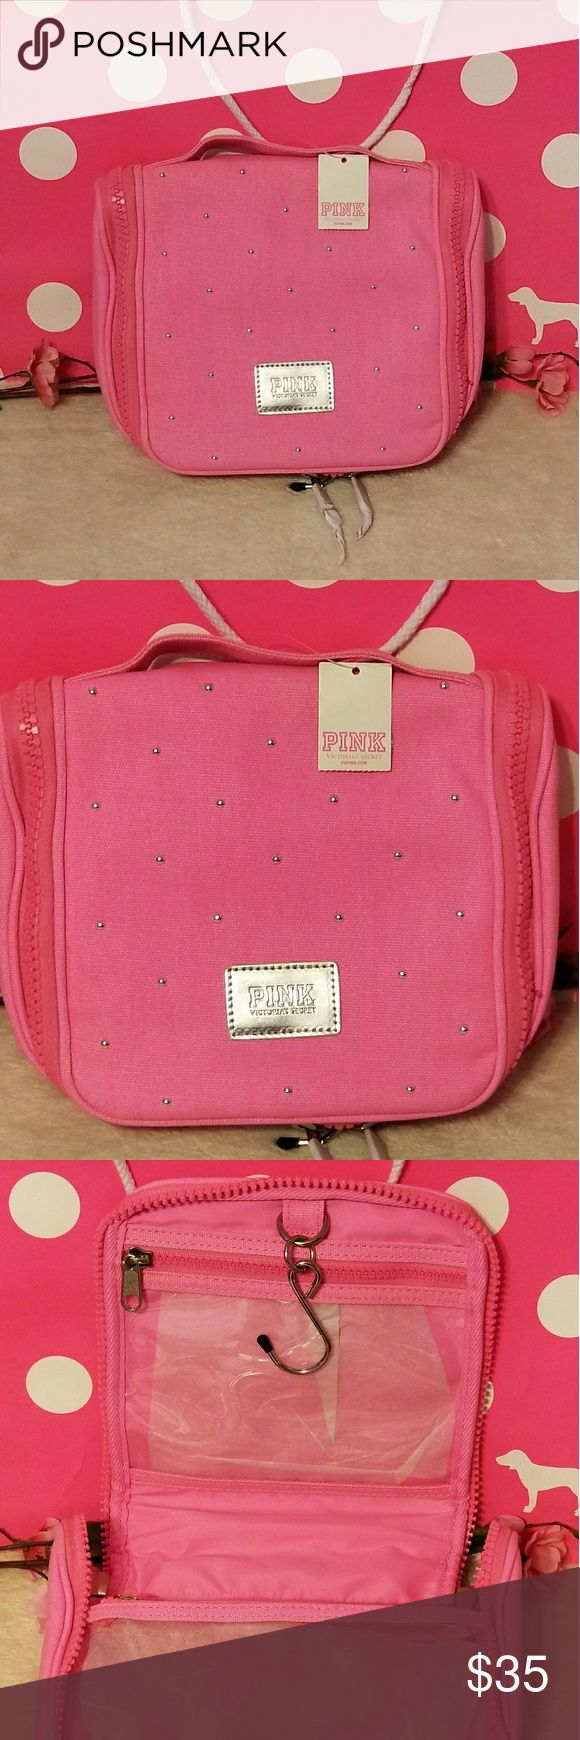 Victoria's Secret PINK Cosmetic Case Hanging Brand new